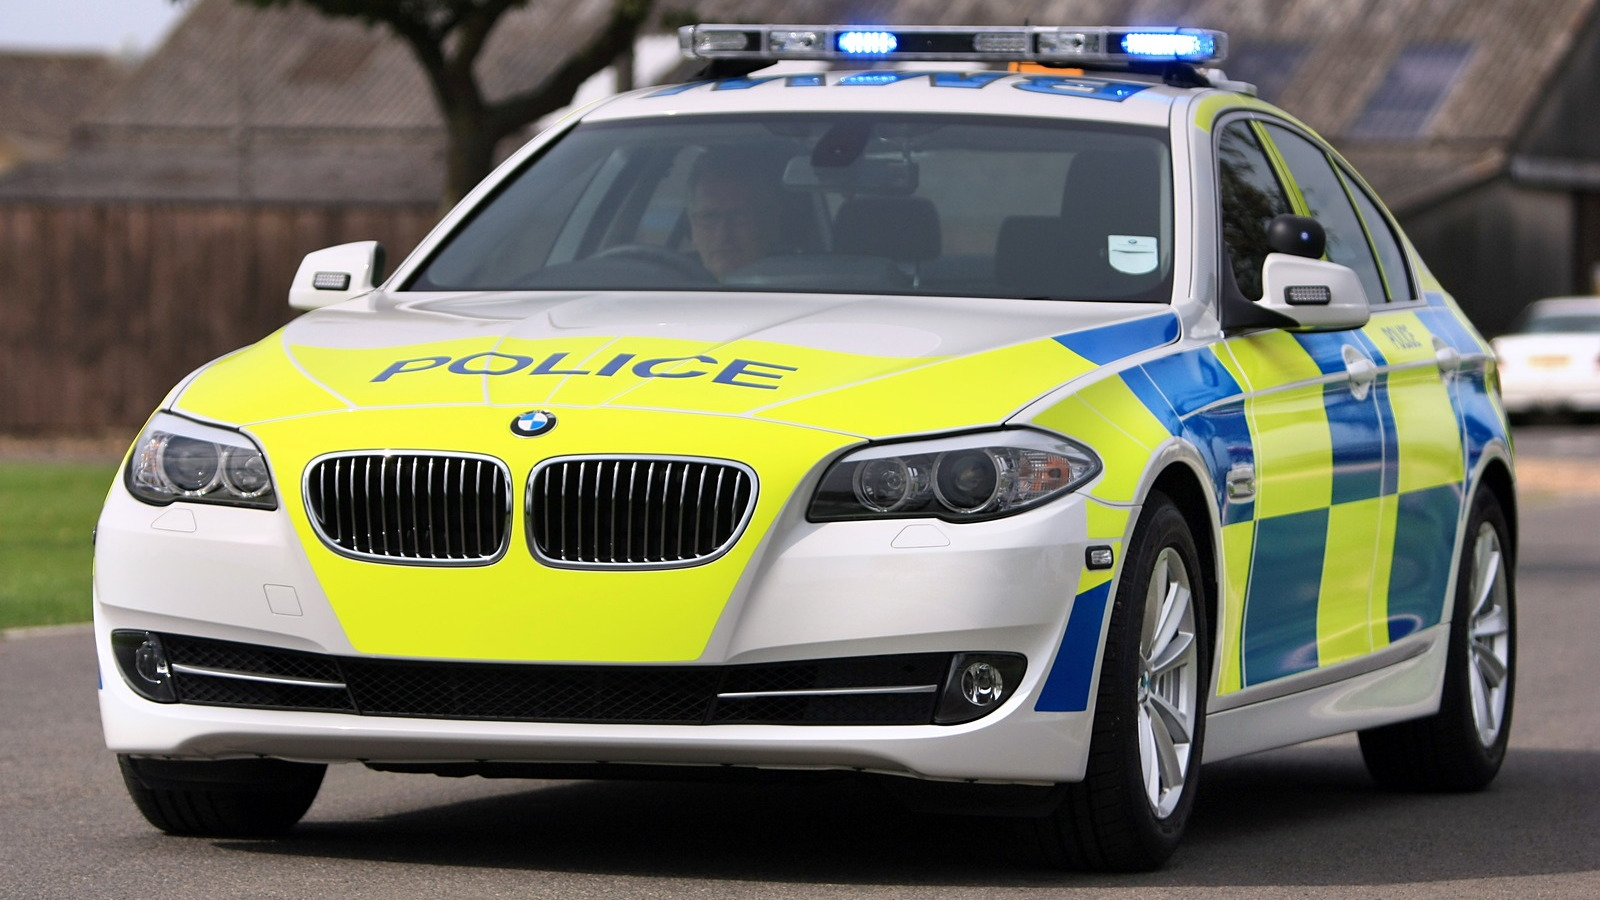 2011 BMW UK Police vehicles